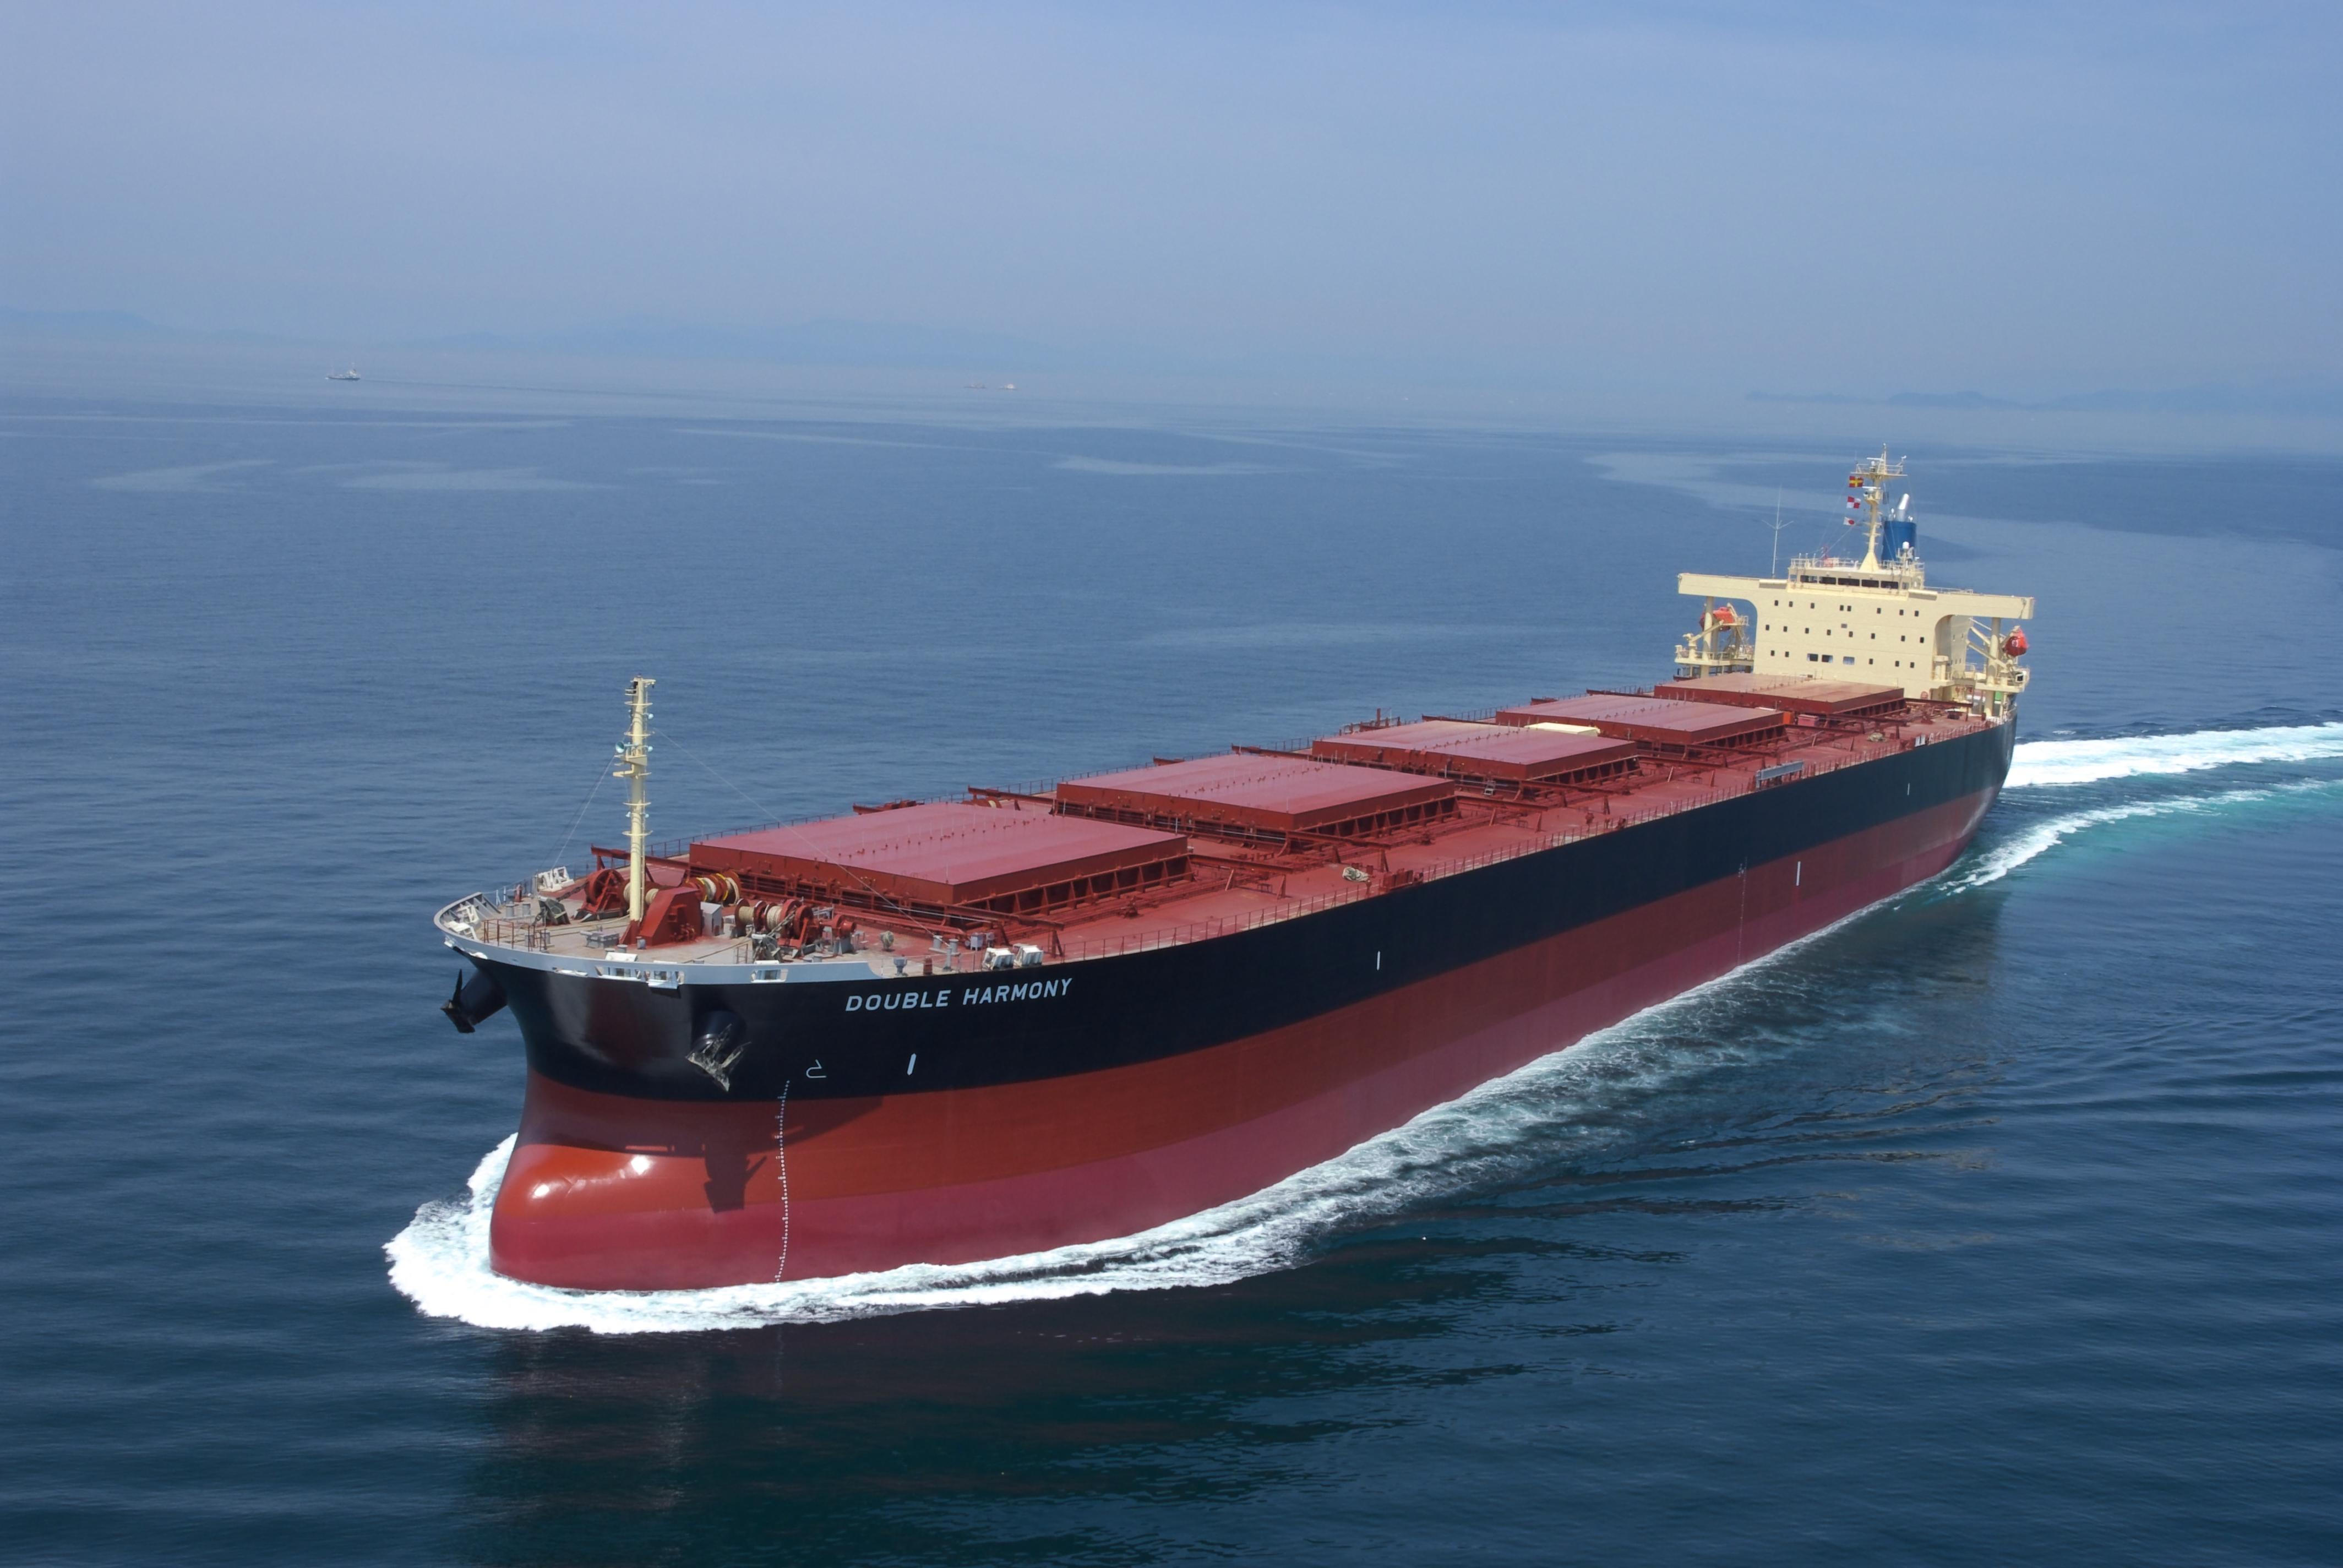 ocean carriers policy of not operating ships of 15 years old